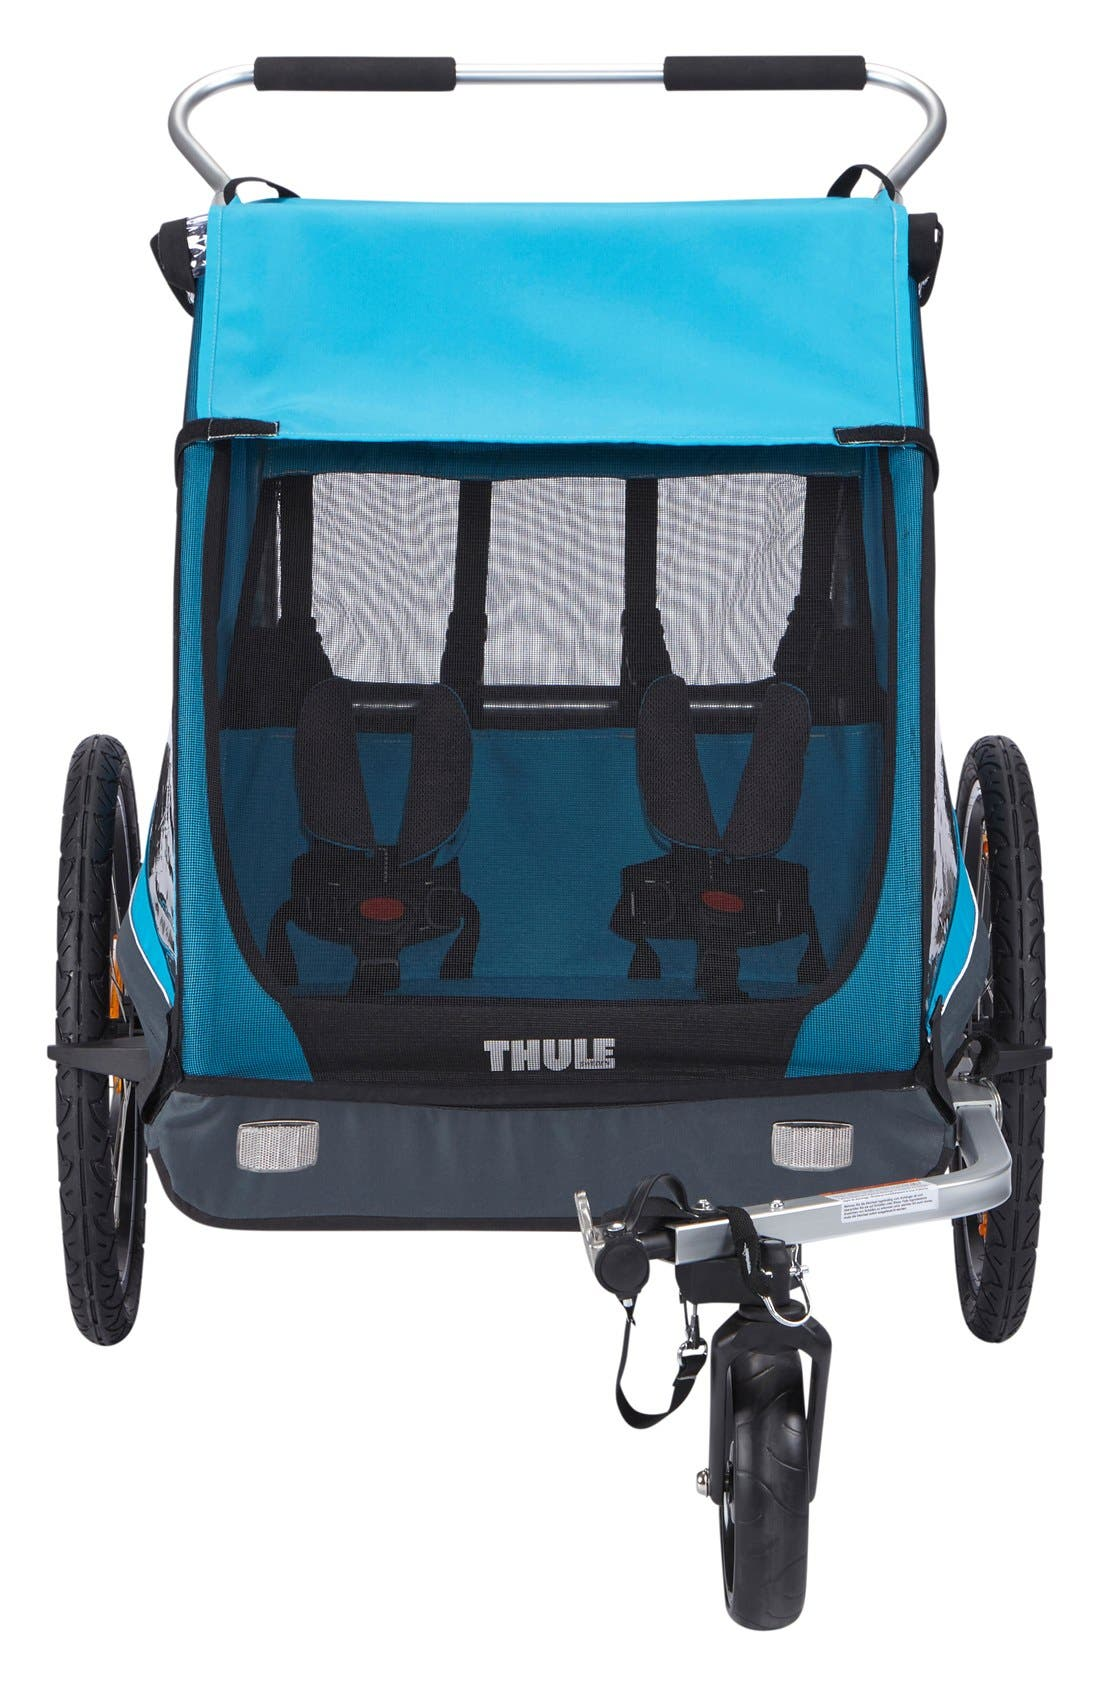 Thule 'Coaster XT' Bike Trailer